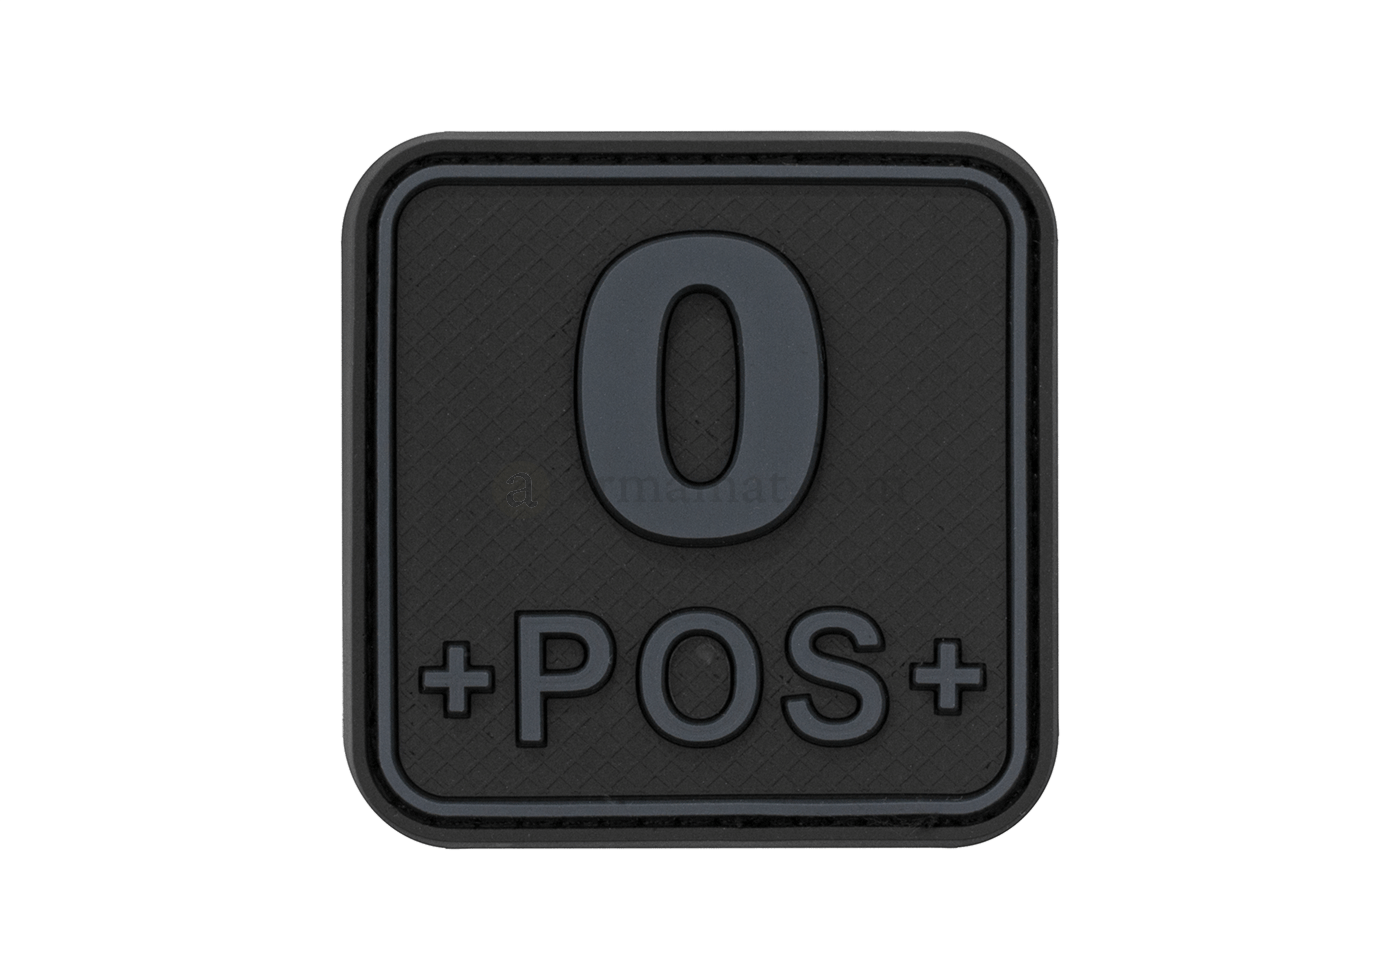 Bloodtype Square Rubber Patch 0 Pos